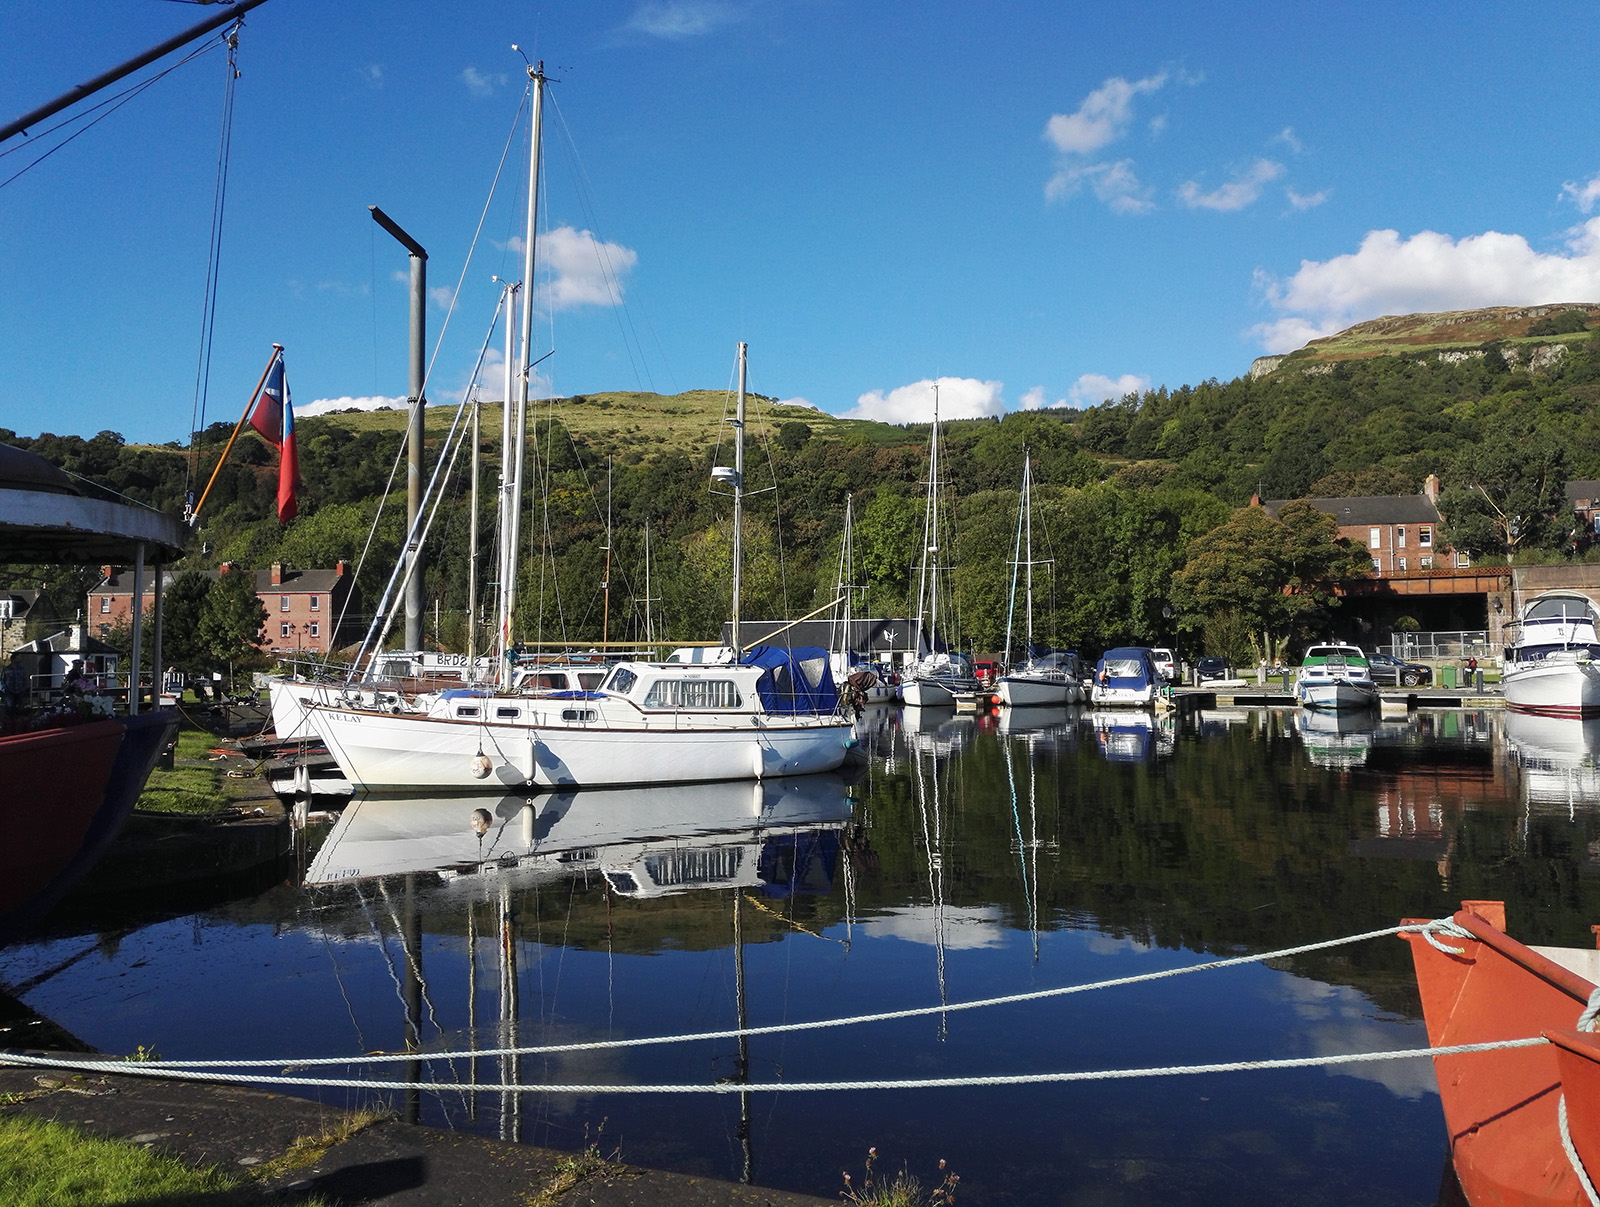 Bowling, Forth and Clyde Canal (Scotland)